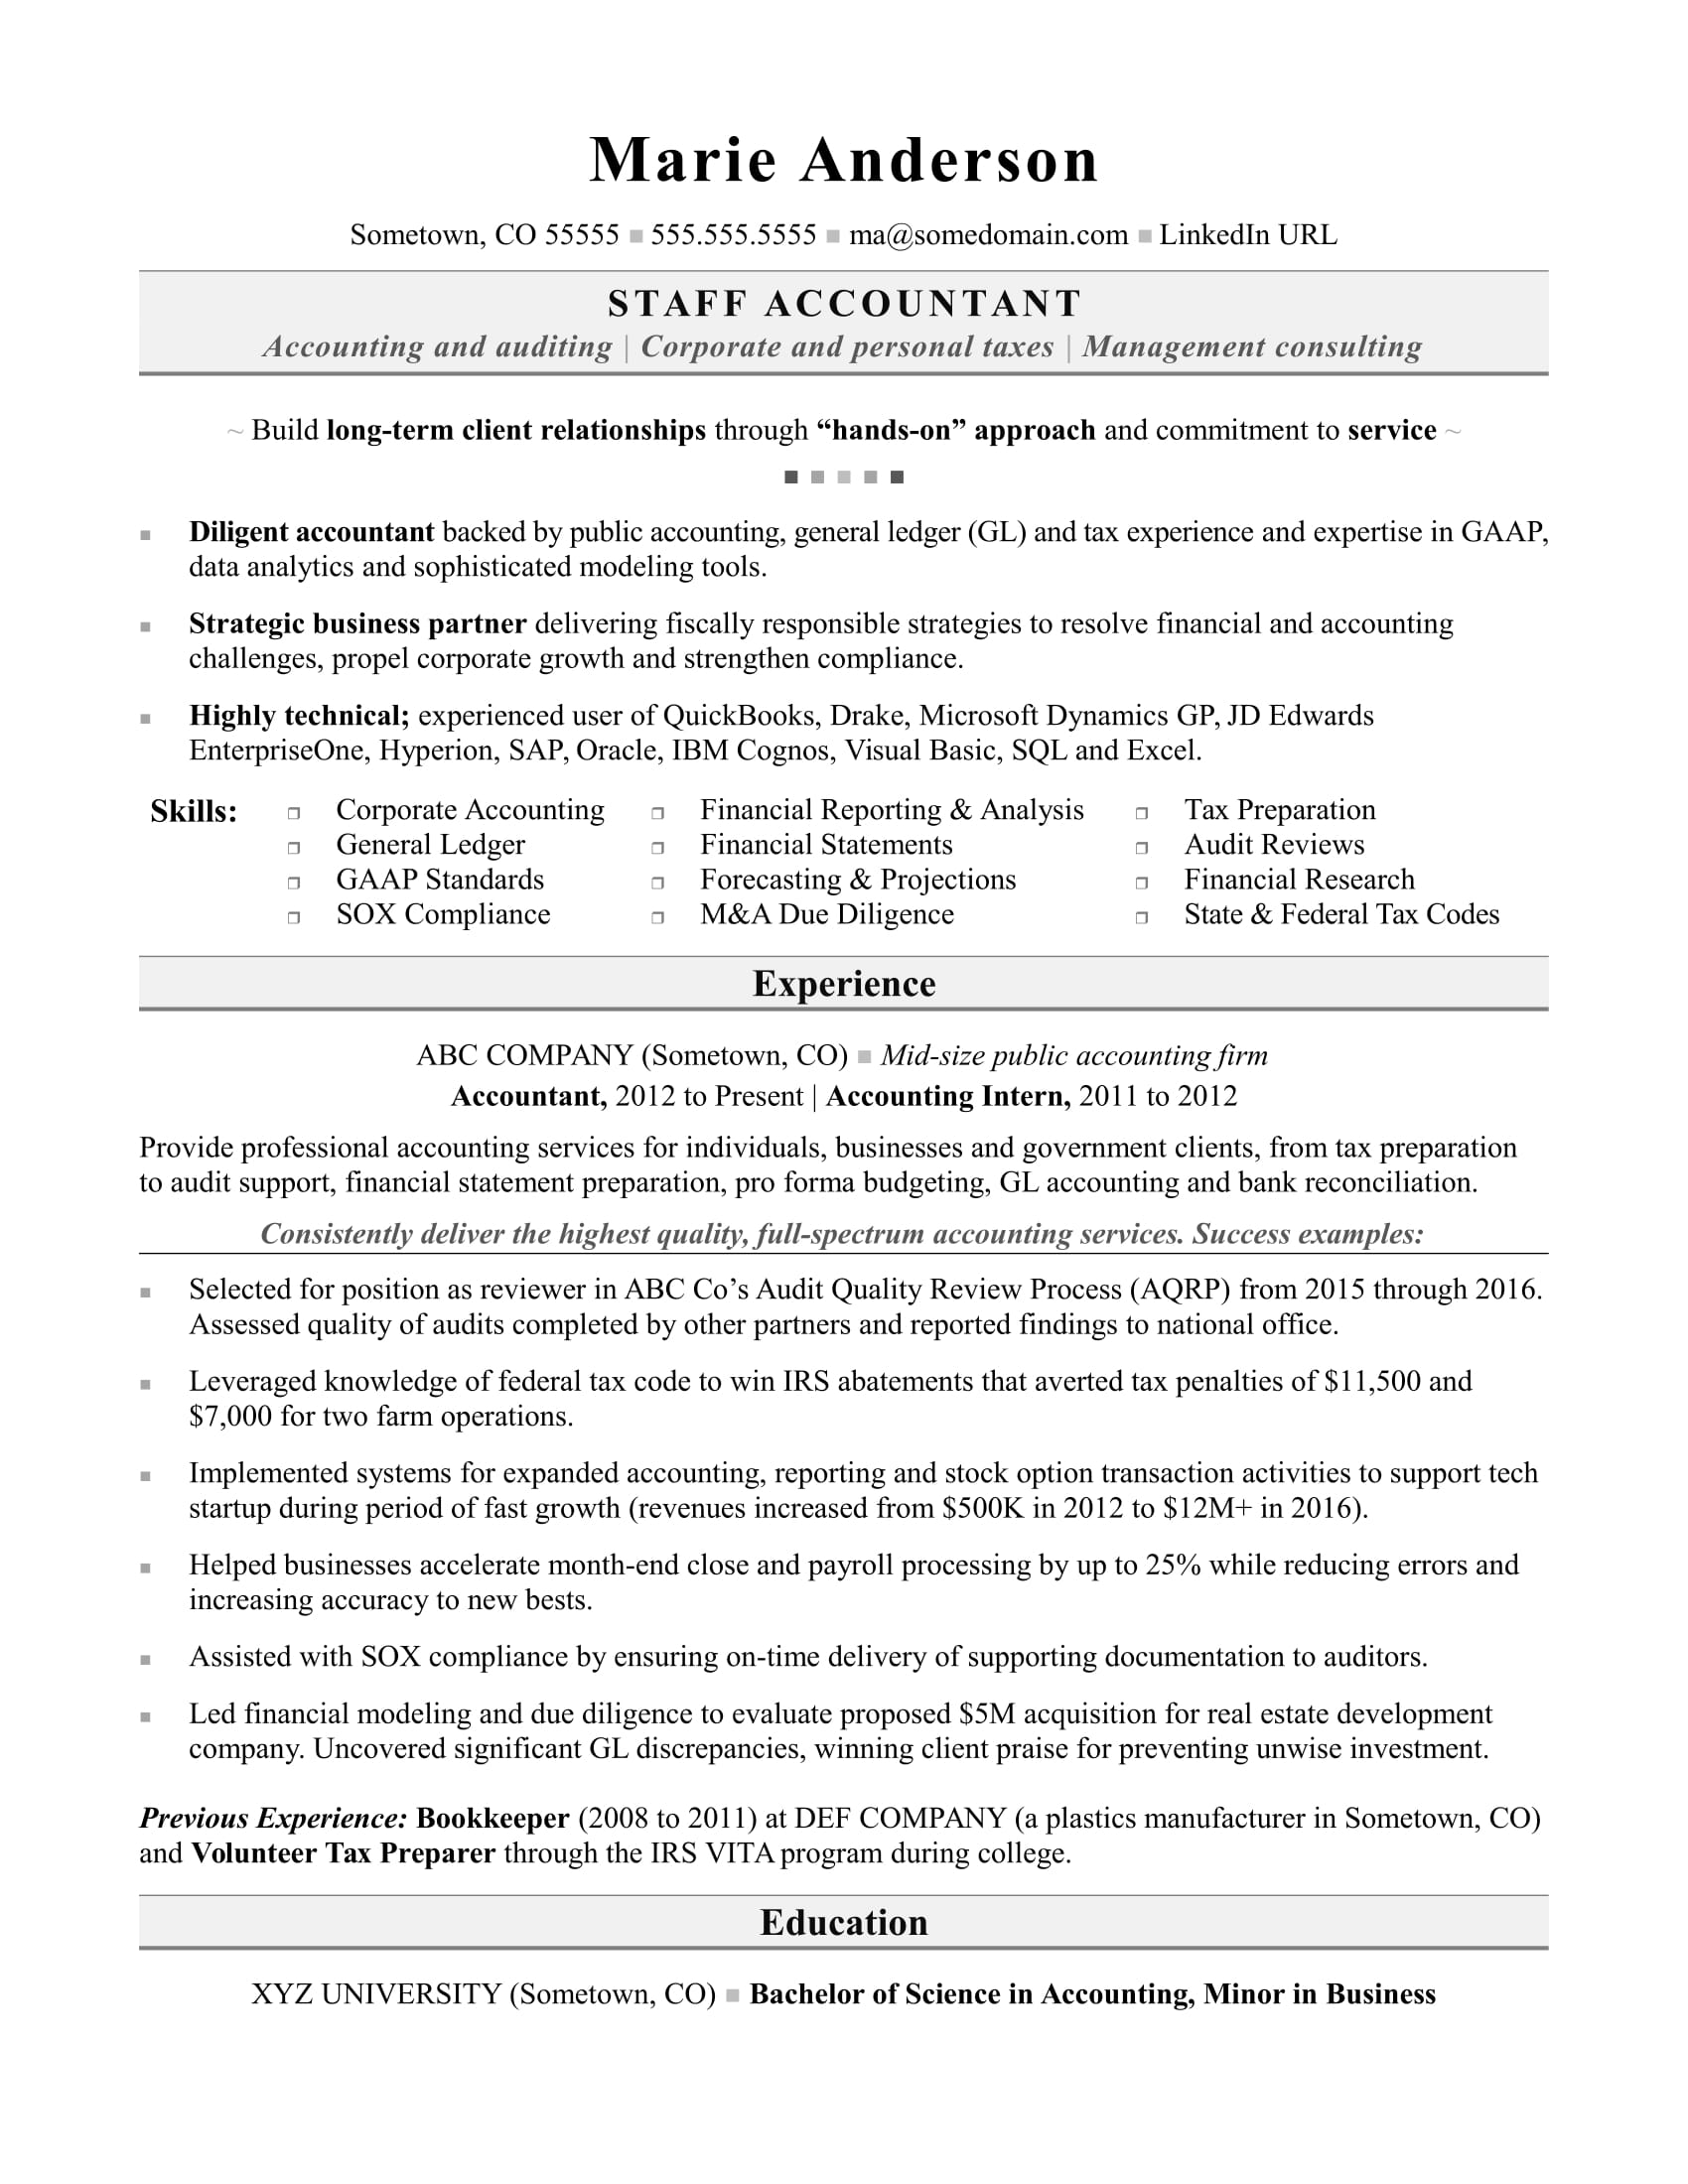 resume Resume For Cpa Candidate accounting resume sample monster com sample